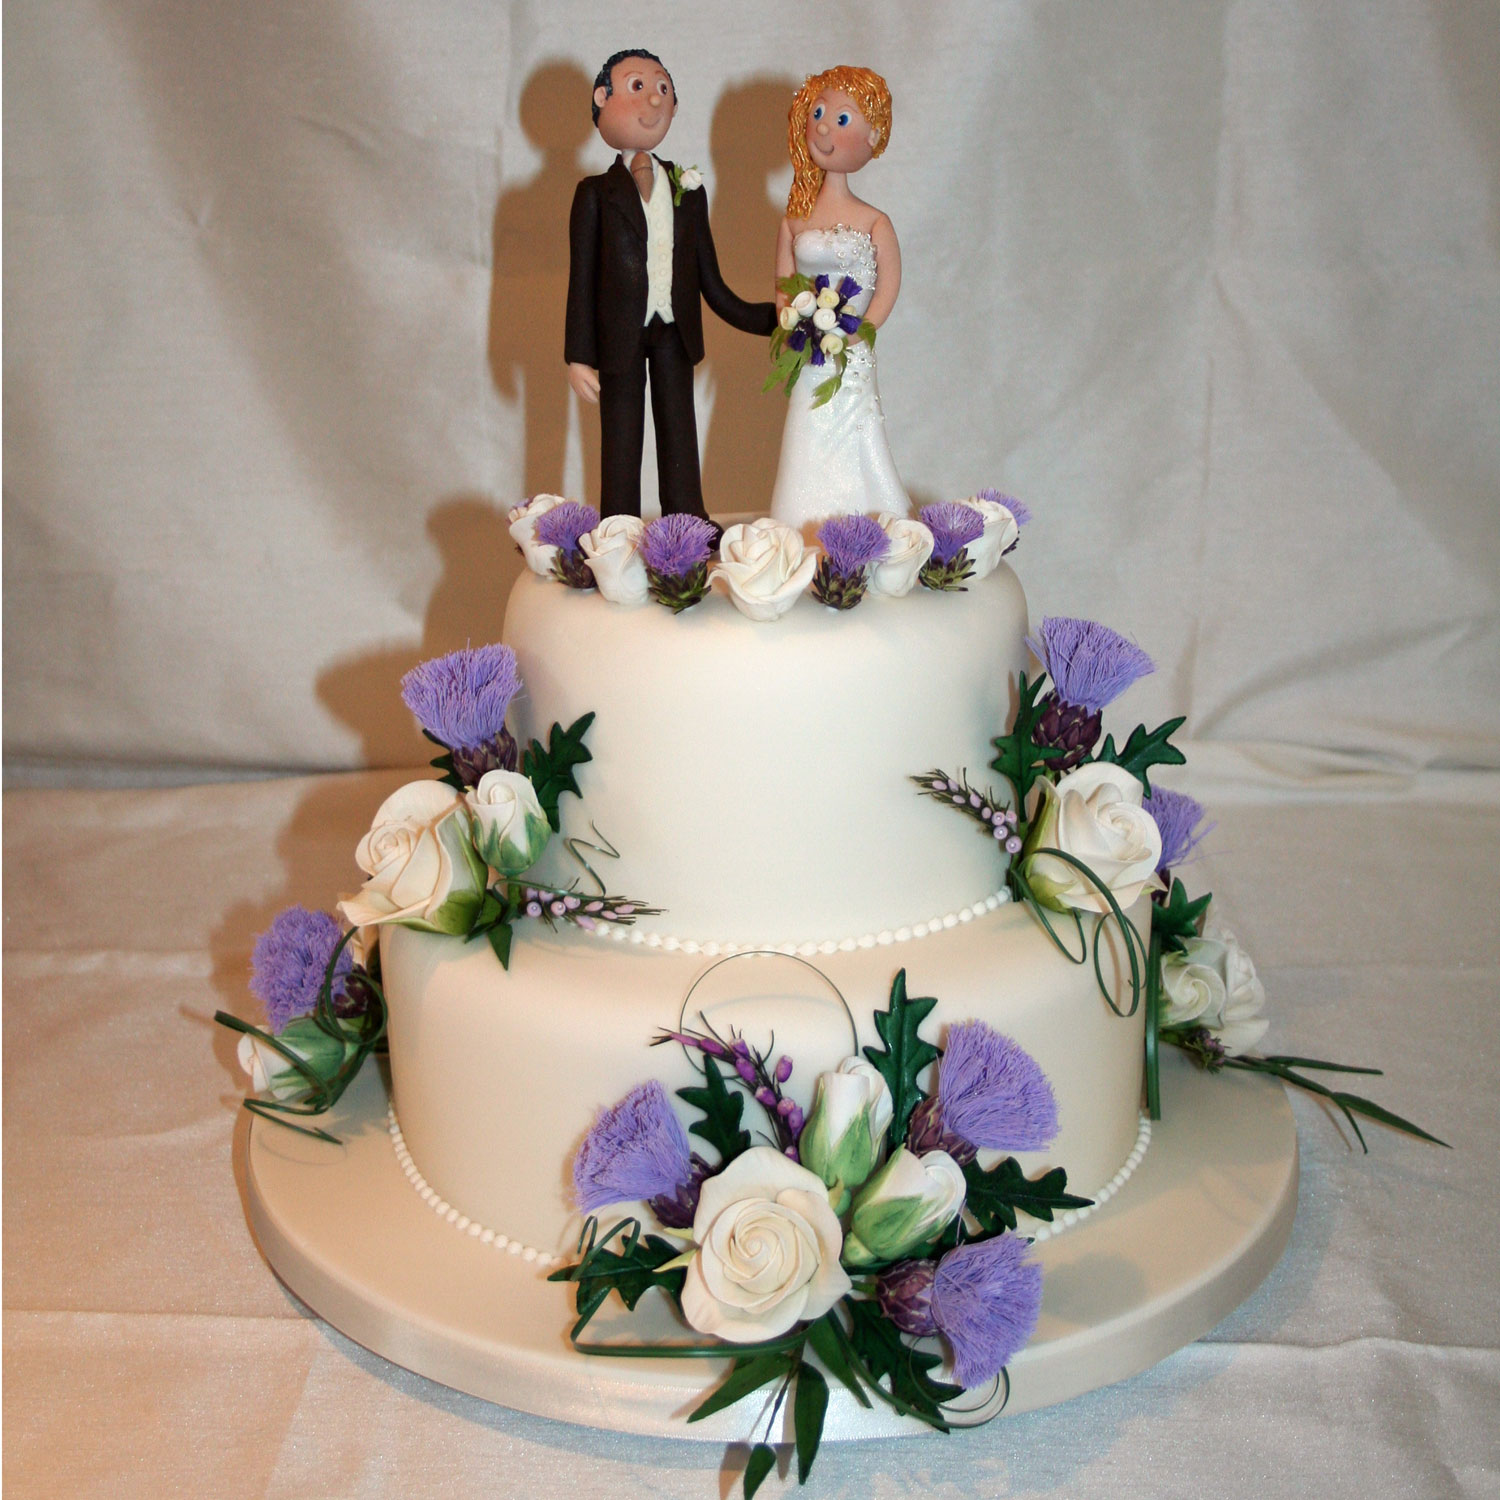 Wedding Cake with Personalised Bride and Groom Cake Topper